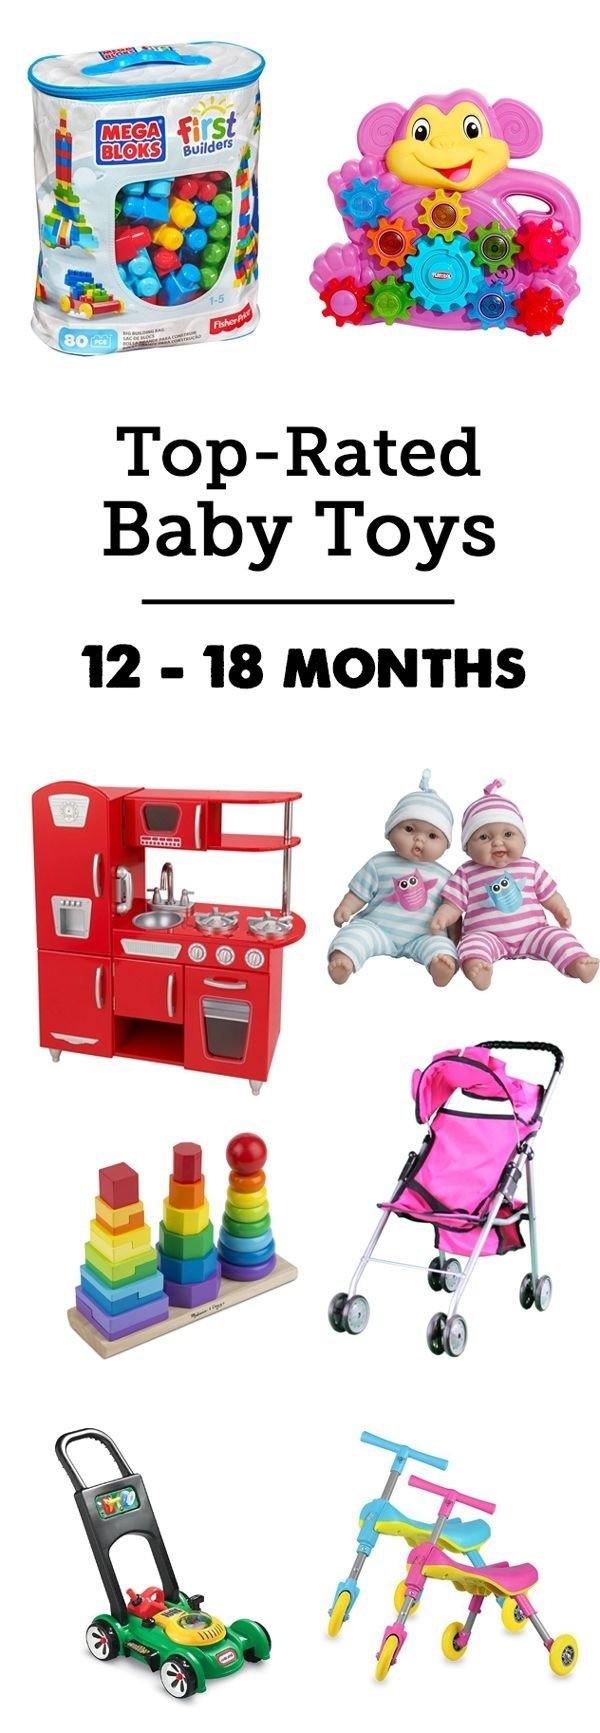 10 Most Popular Gift Ideas For Girls Age 12 122 best toys for 1 year old girl 2018 images on pinterest toddler 1 2020